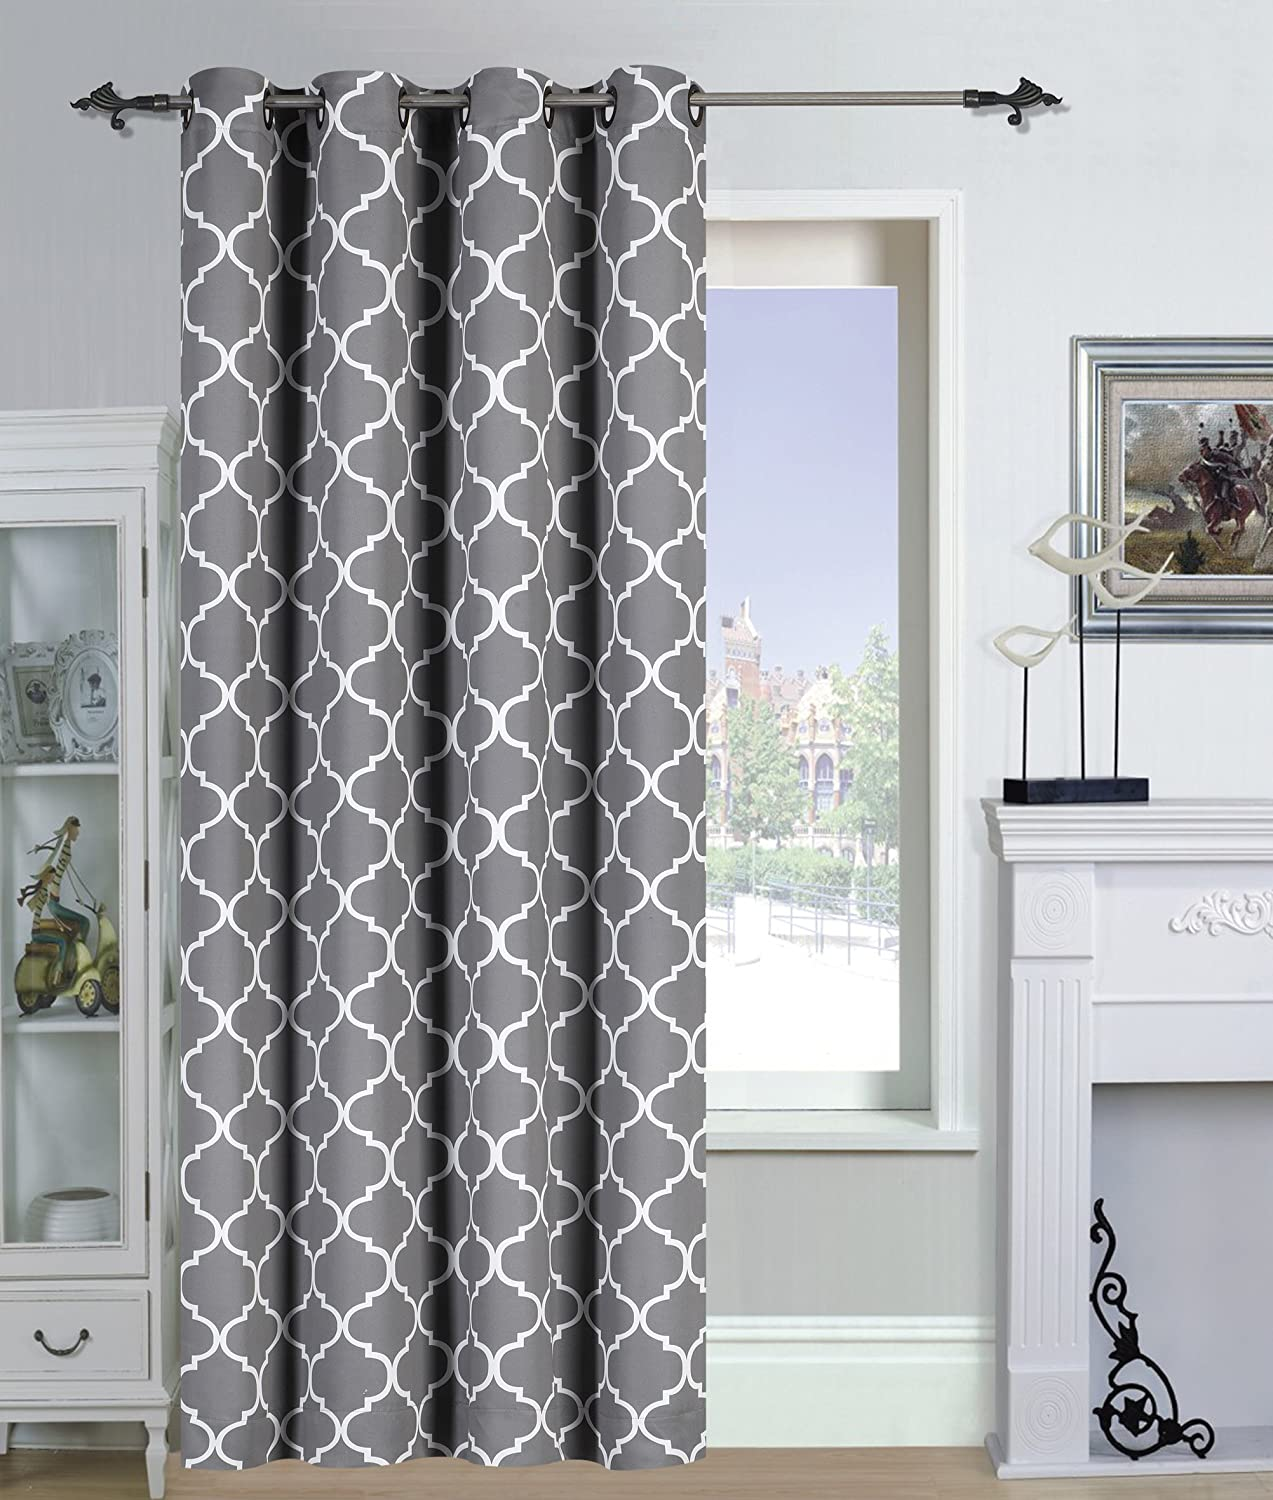 curtains pinterest desire elegant and home draperies ideas french charter style best drapes less for attractive curtain throughout images regarding on